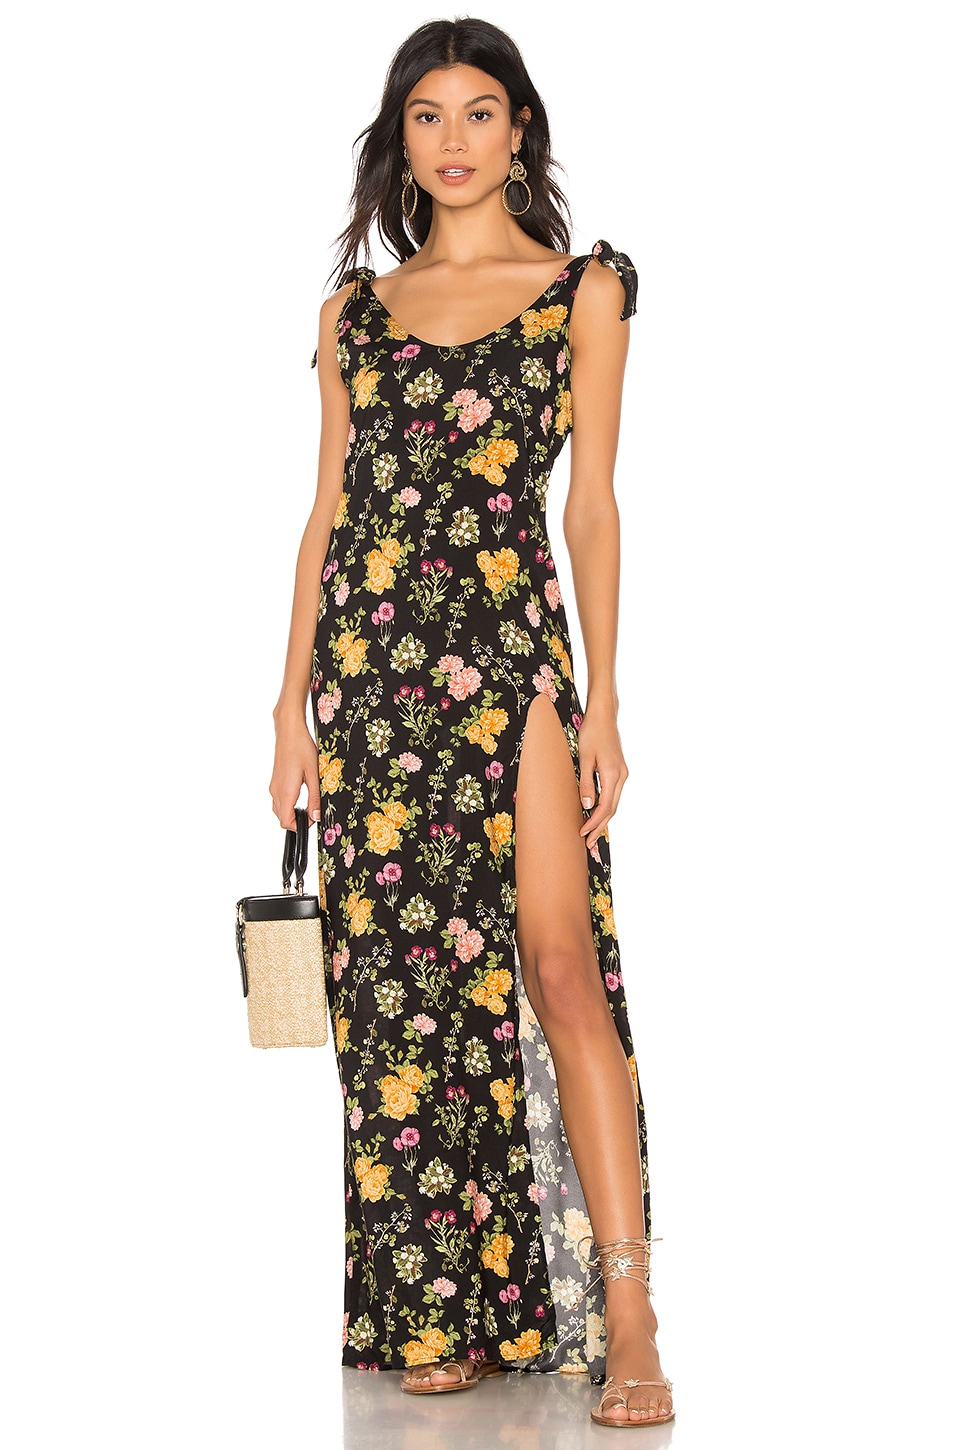 Beach Bunny Lily Maxi Dress in Black